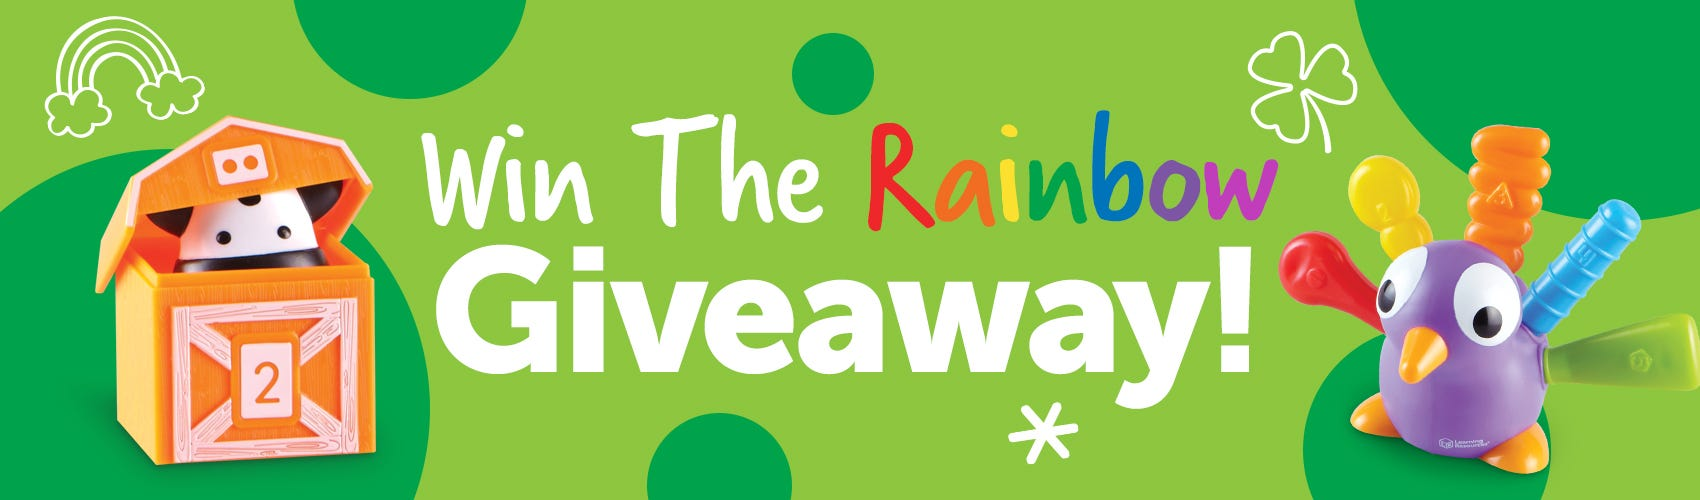 Win the Rainbow Giveaway!